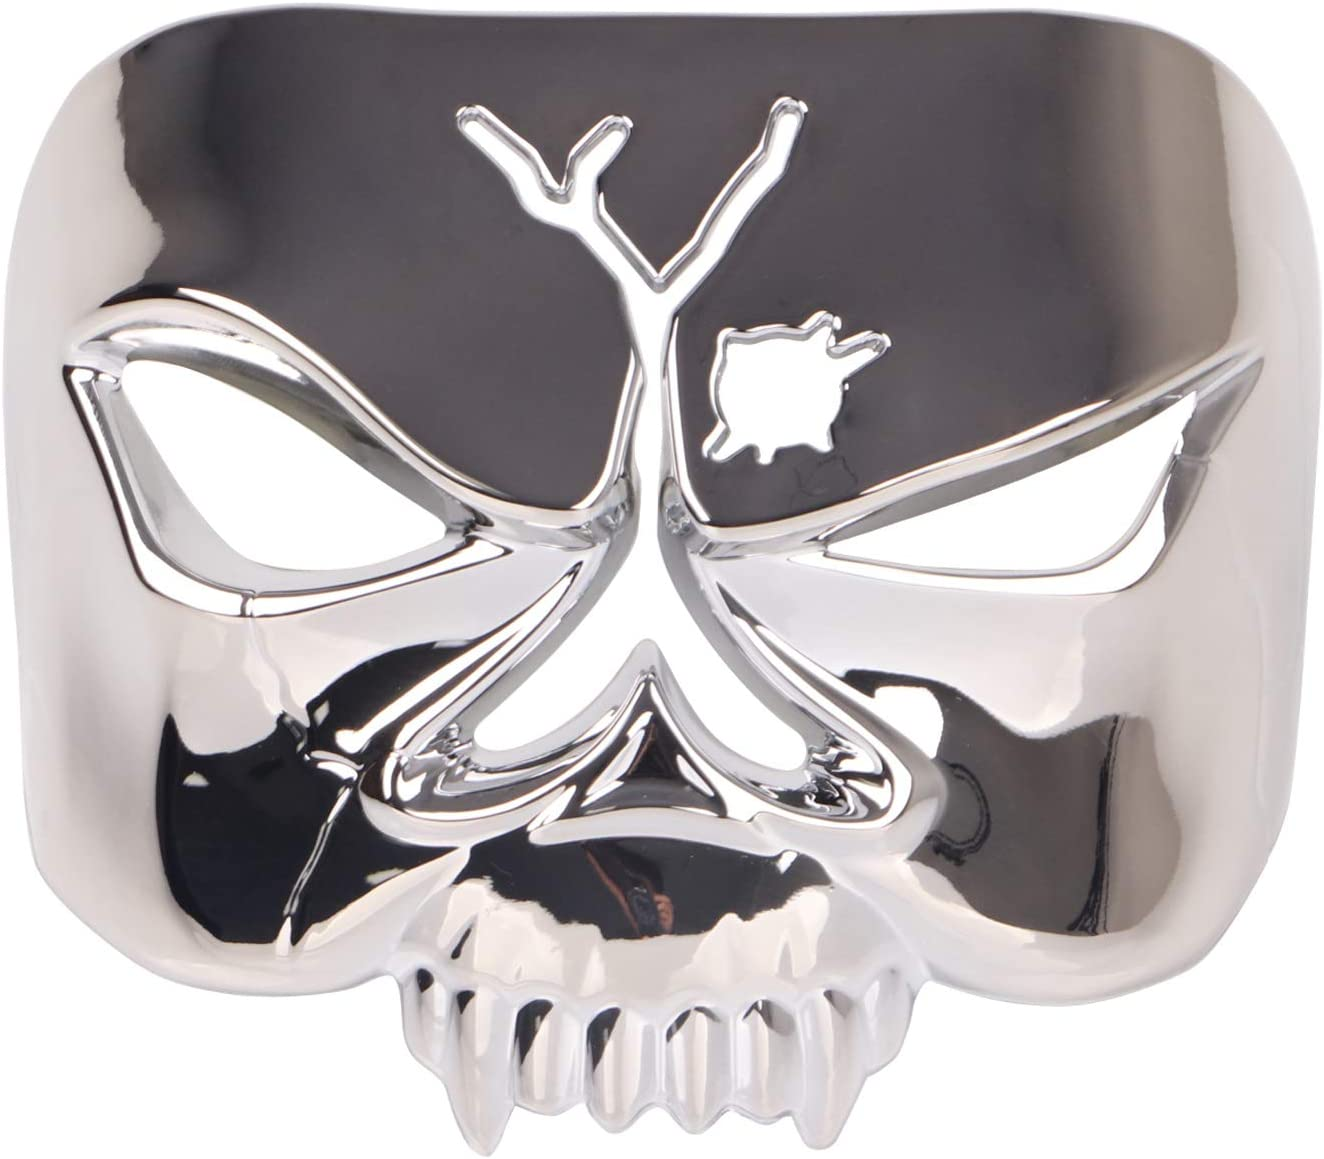 Chrome Zombie Skull Taillight Cover for 1973-2019 Harley-Davidson Motorcycles Kuryakyn 9009 Motorcycle Accent Accessory